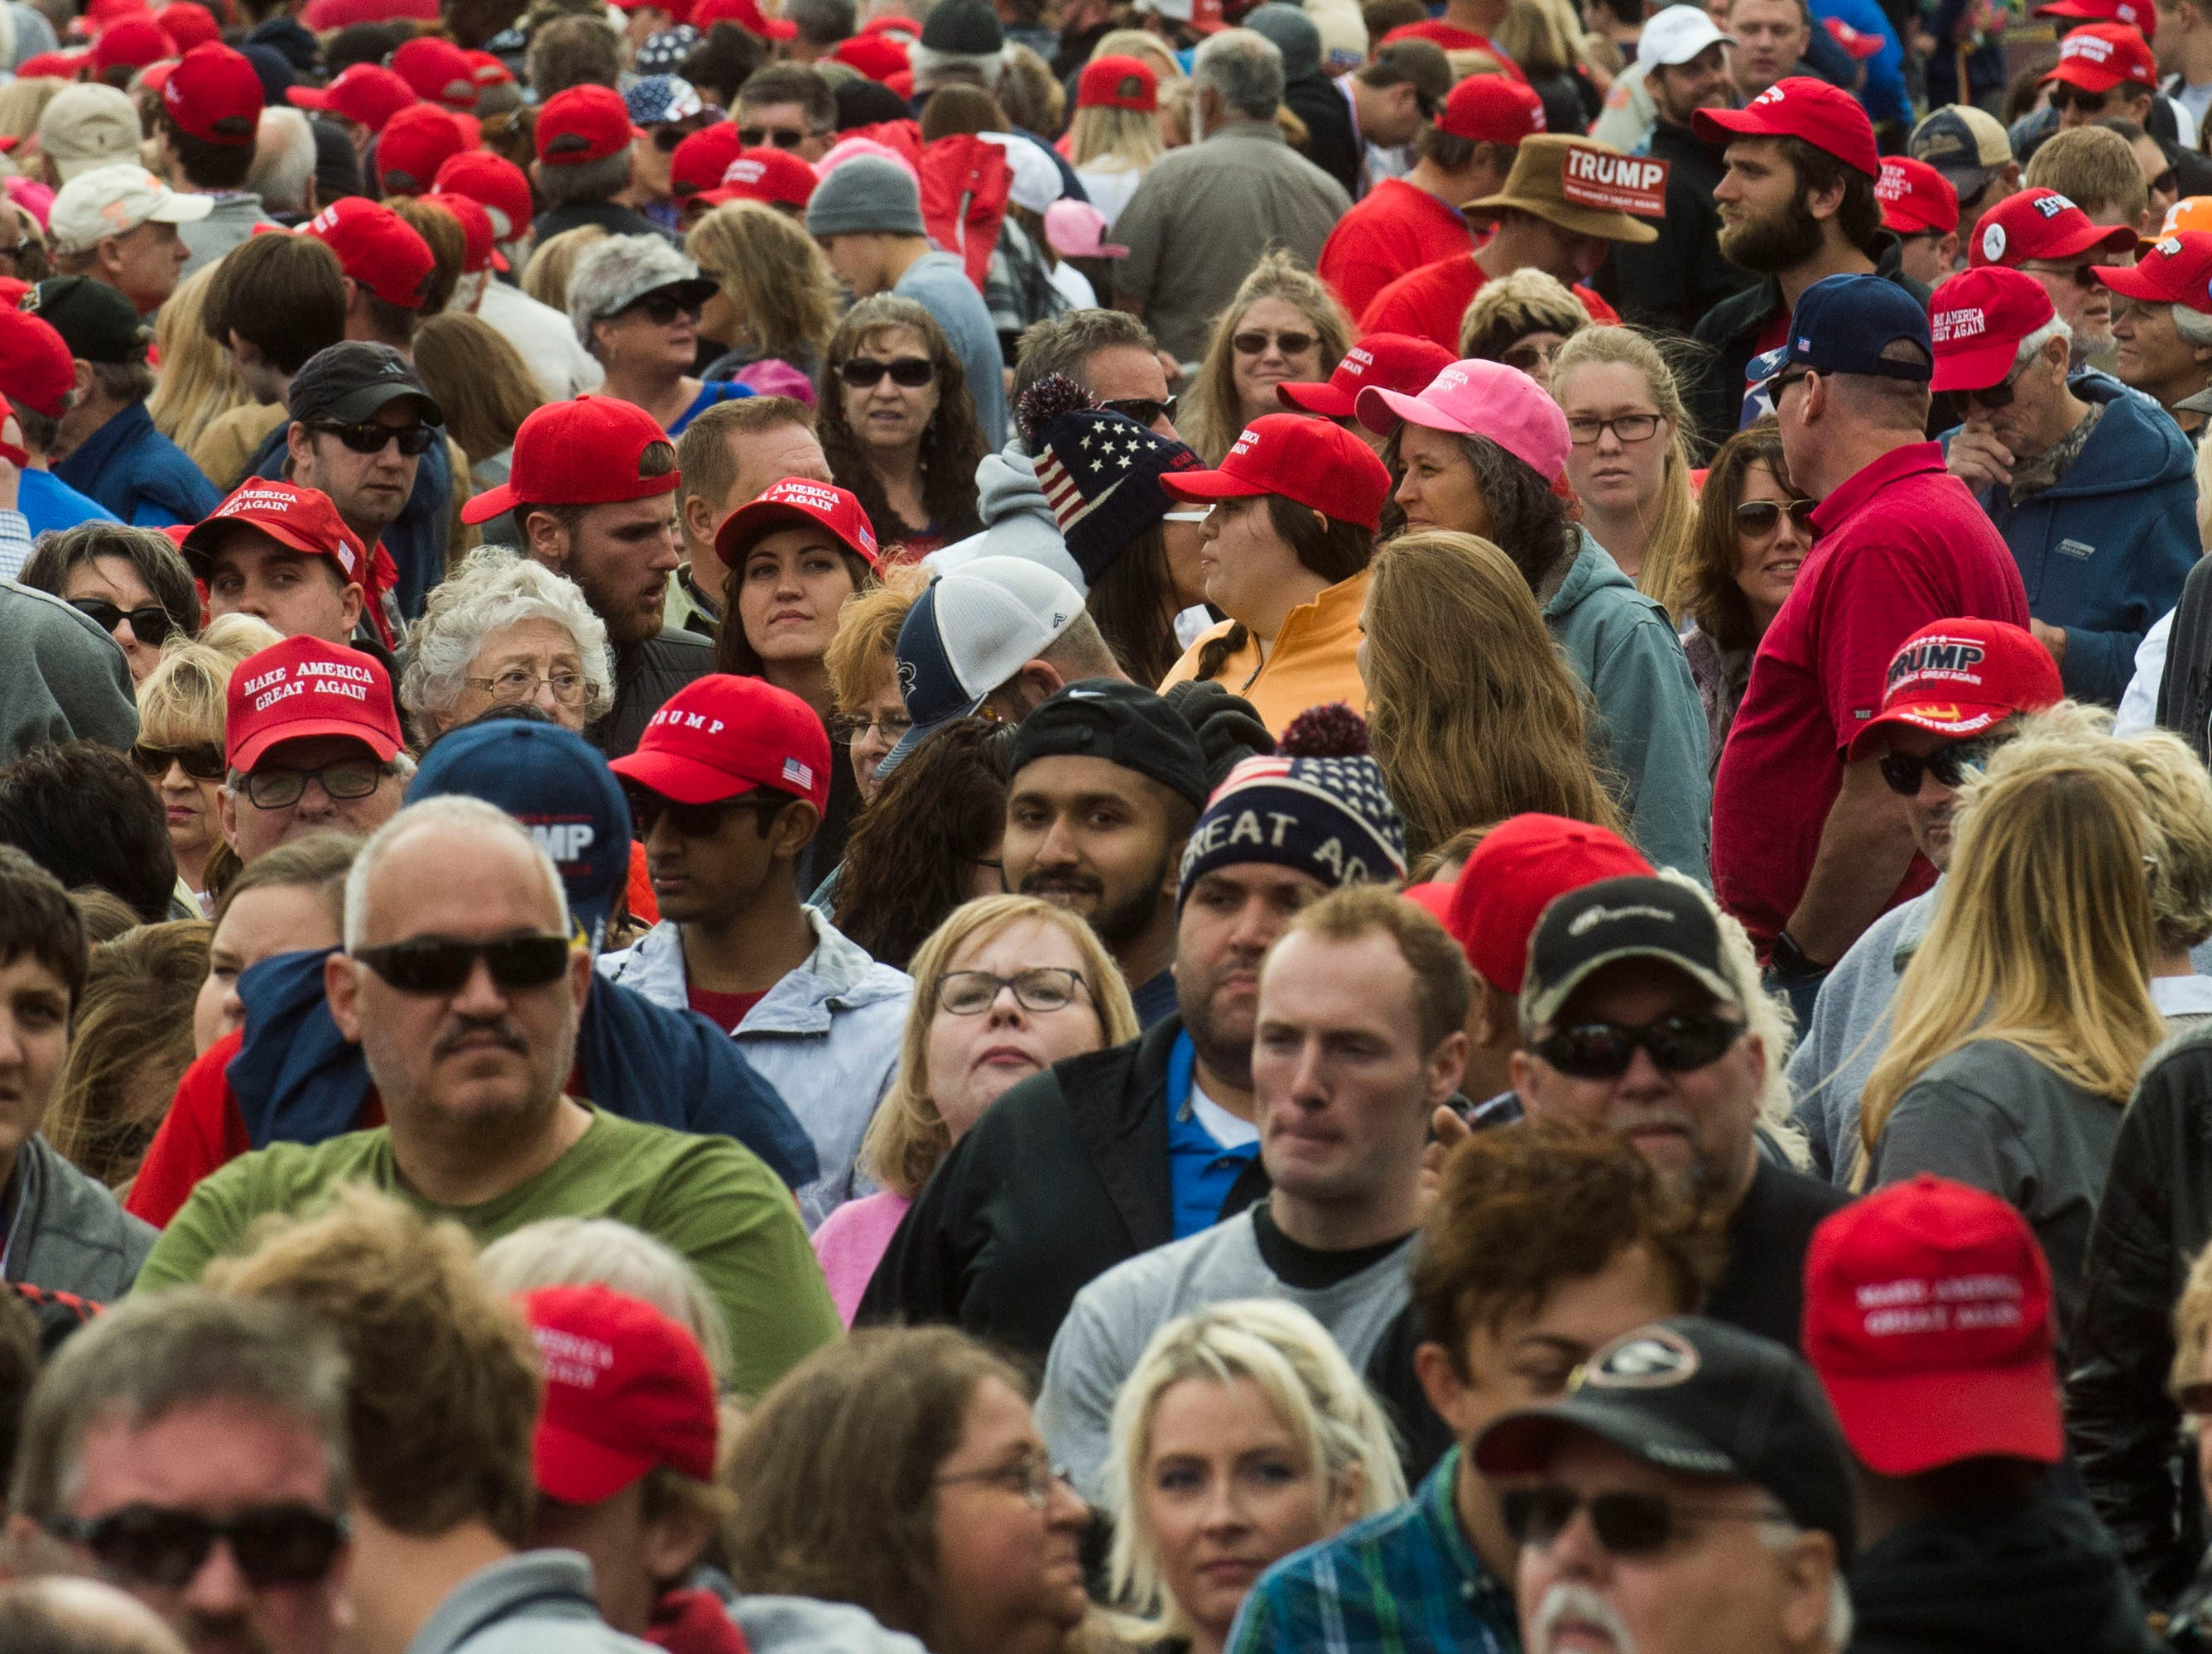 Trump supporters stand in line before a Donald Trump rally in support of U.S. Rep. Marsha Blackburn for the U.S. Senate at McKenzie Arena in Chattanooga, Sunday, Nov. 4, 2018.